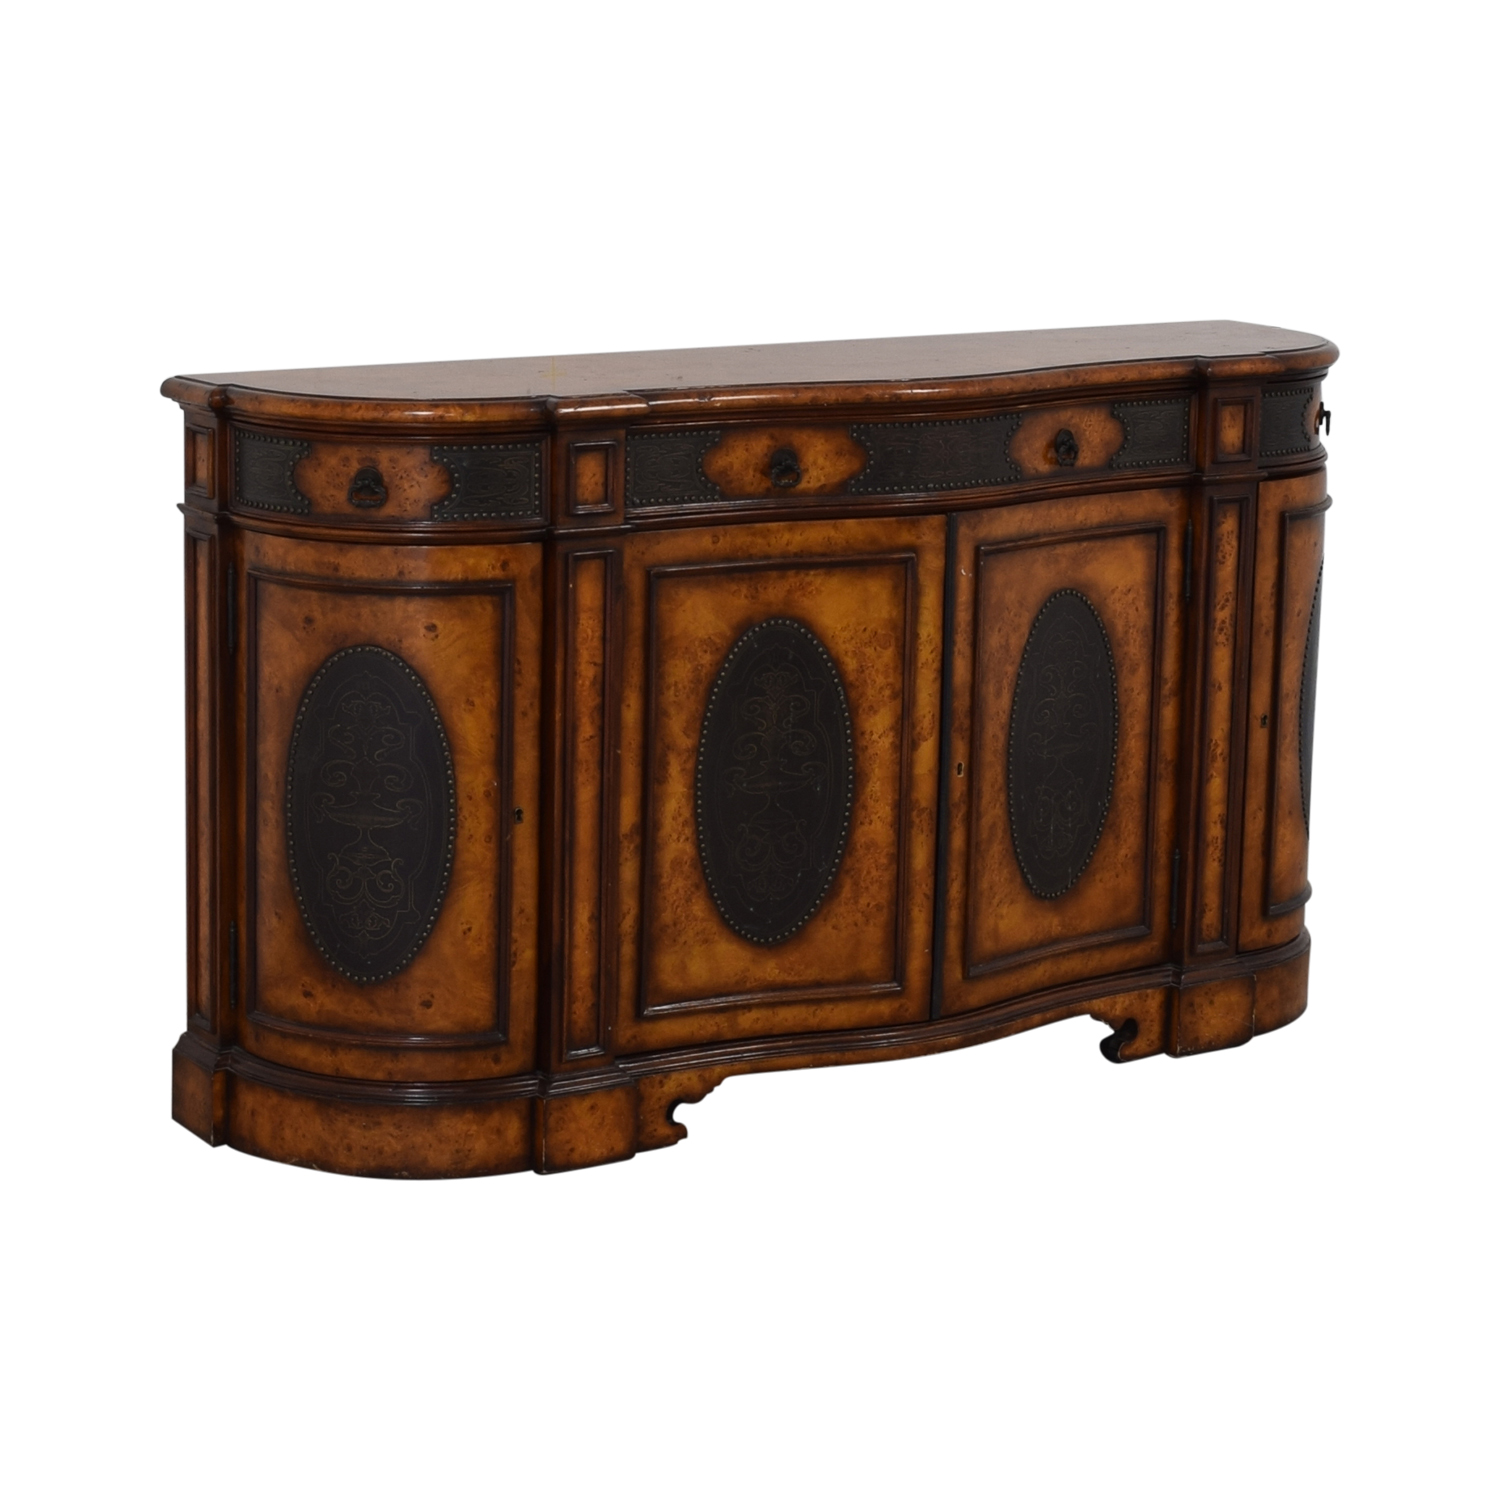 ABC Carpet & Home ABC Carpet & Home Theodore Alexander Sideboard Buffet used